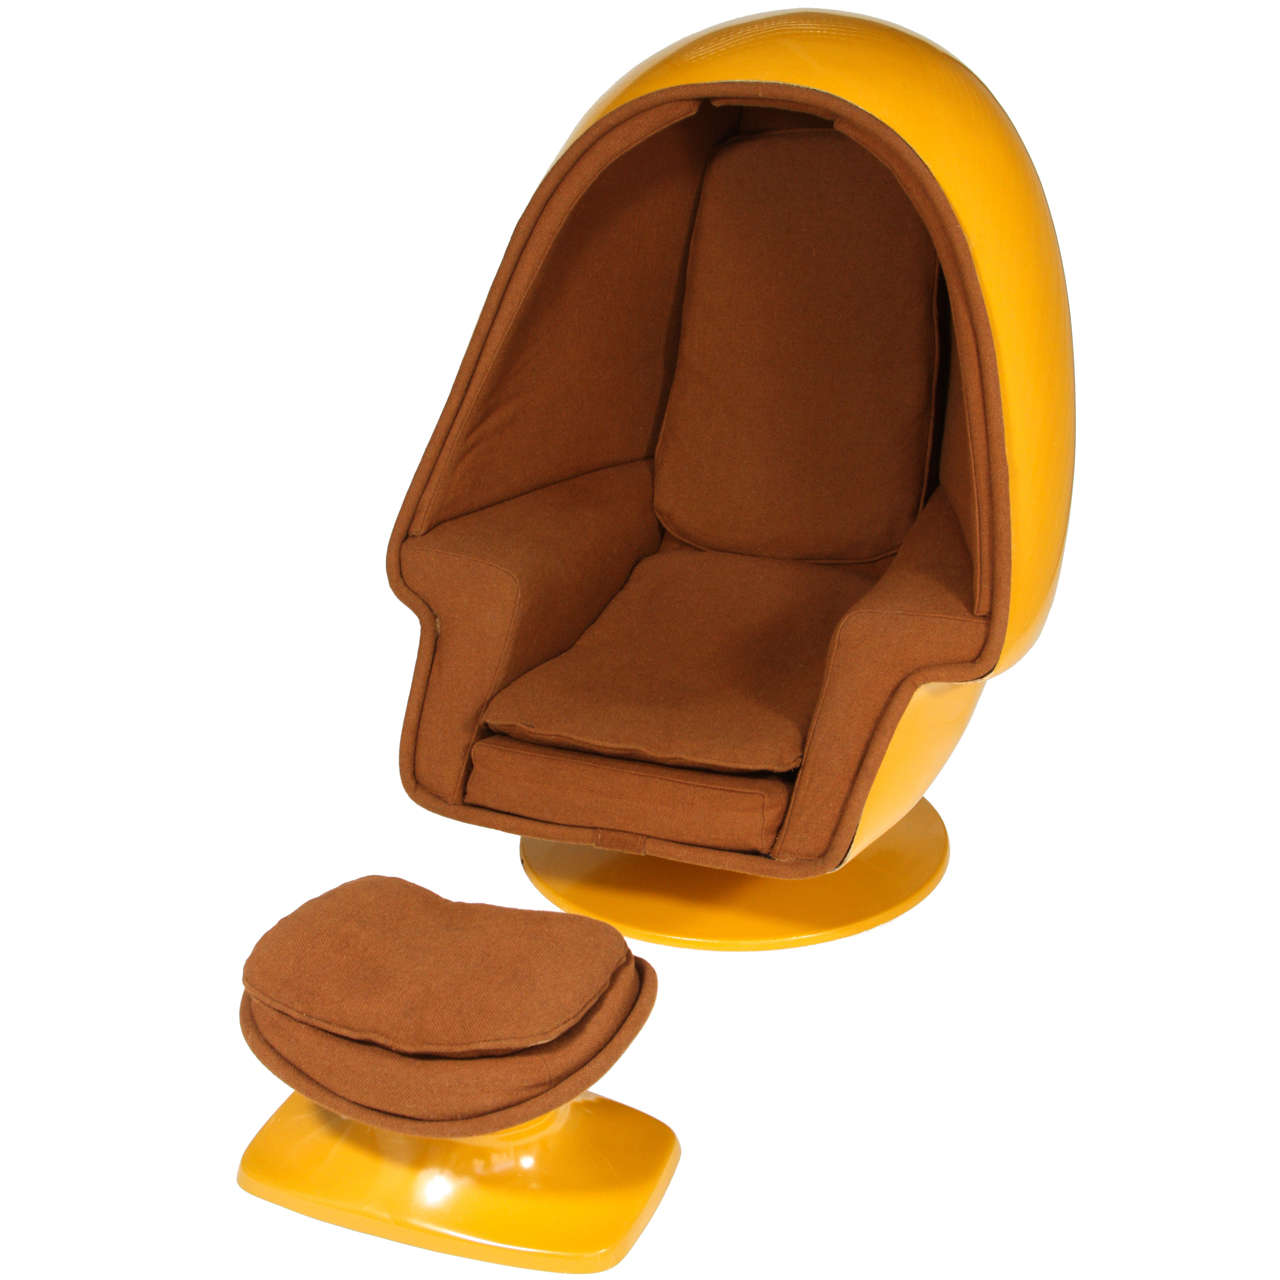 1970 vintage lee west alpha chamber egg pod stereo chair at 1stdibs